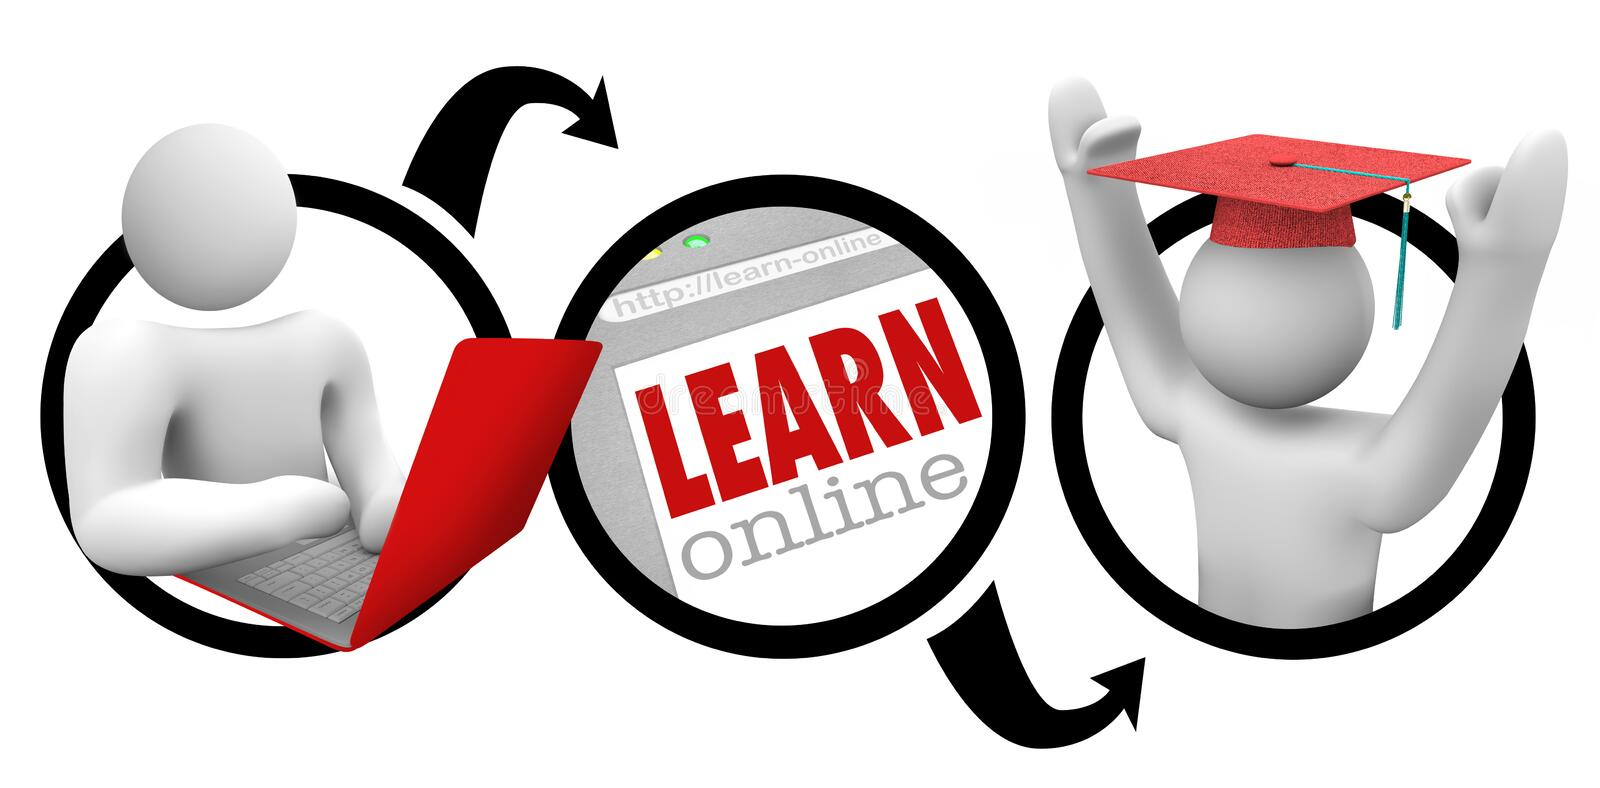 Going Online to Learn - Education royalty free illustration